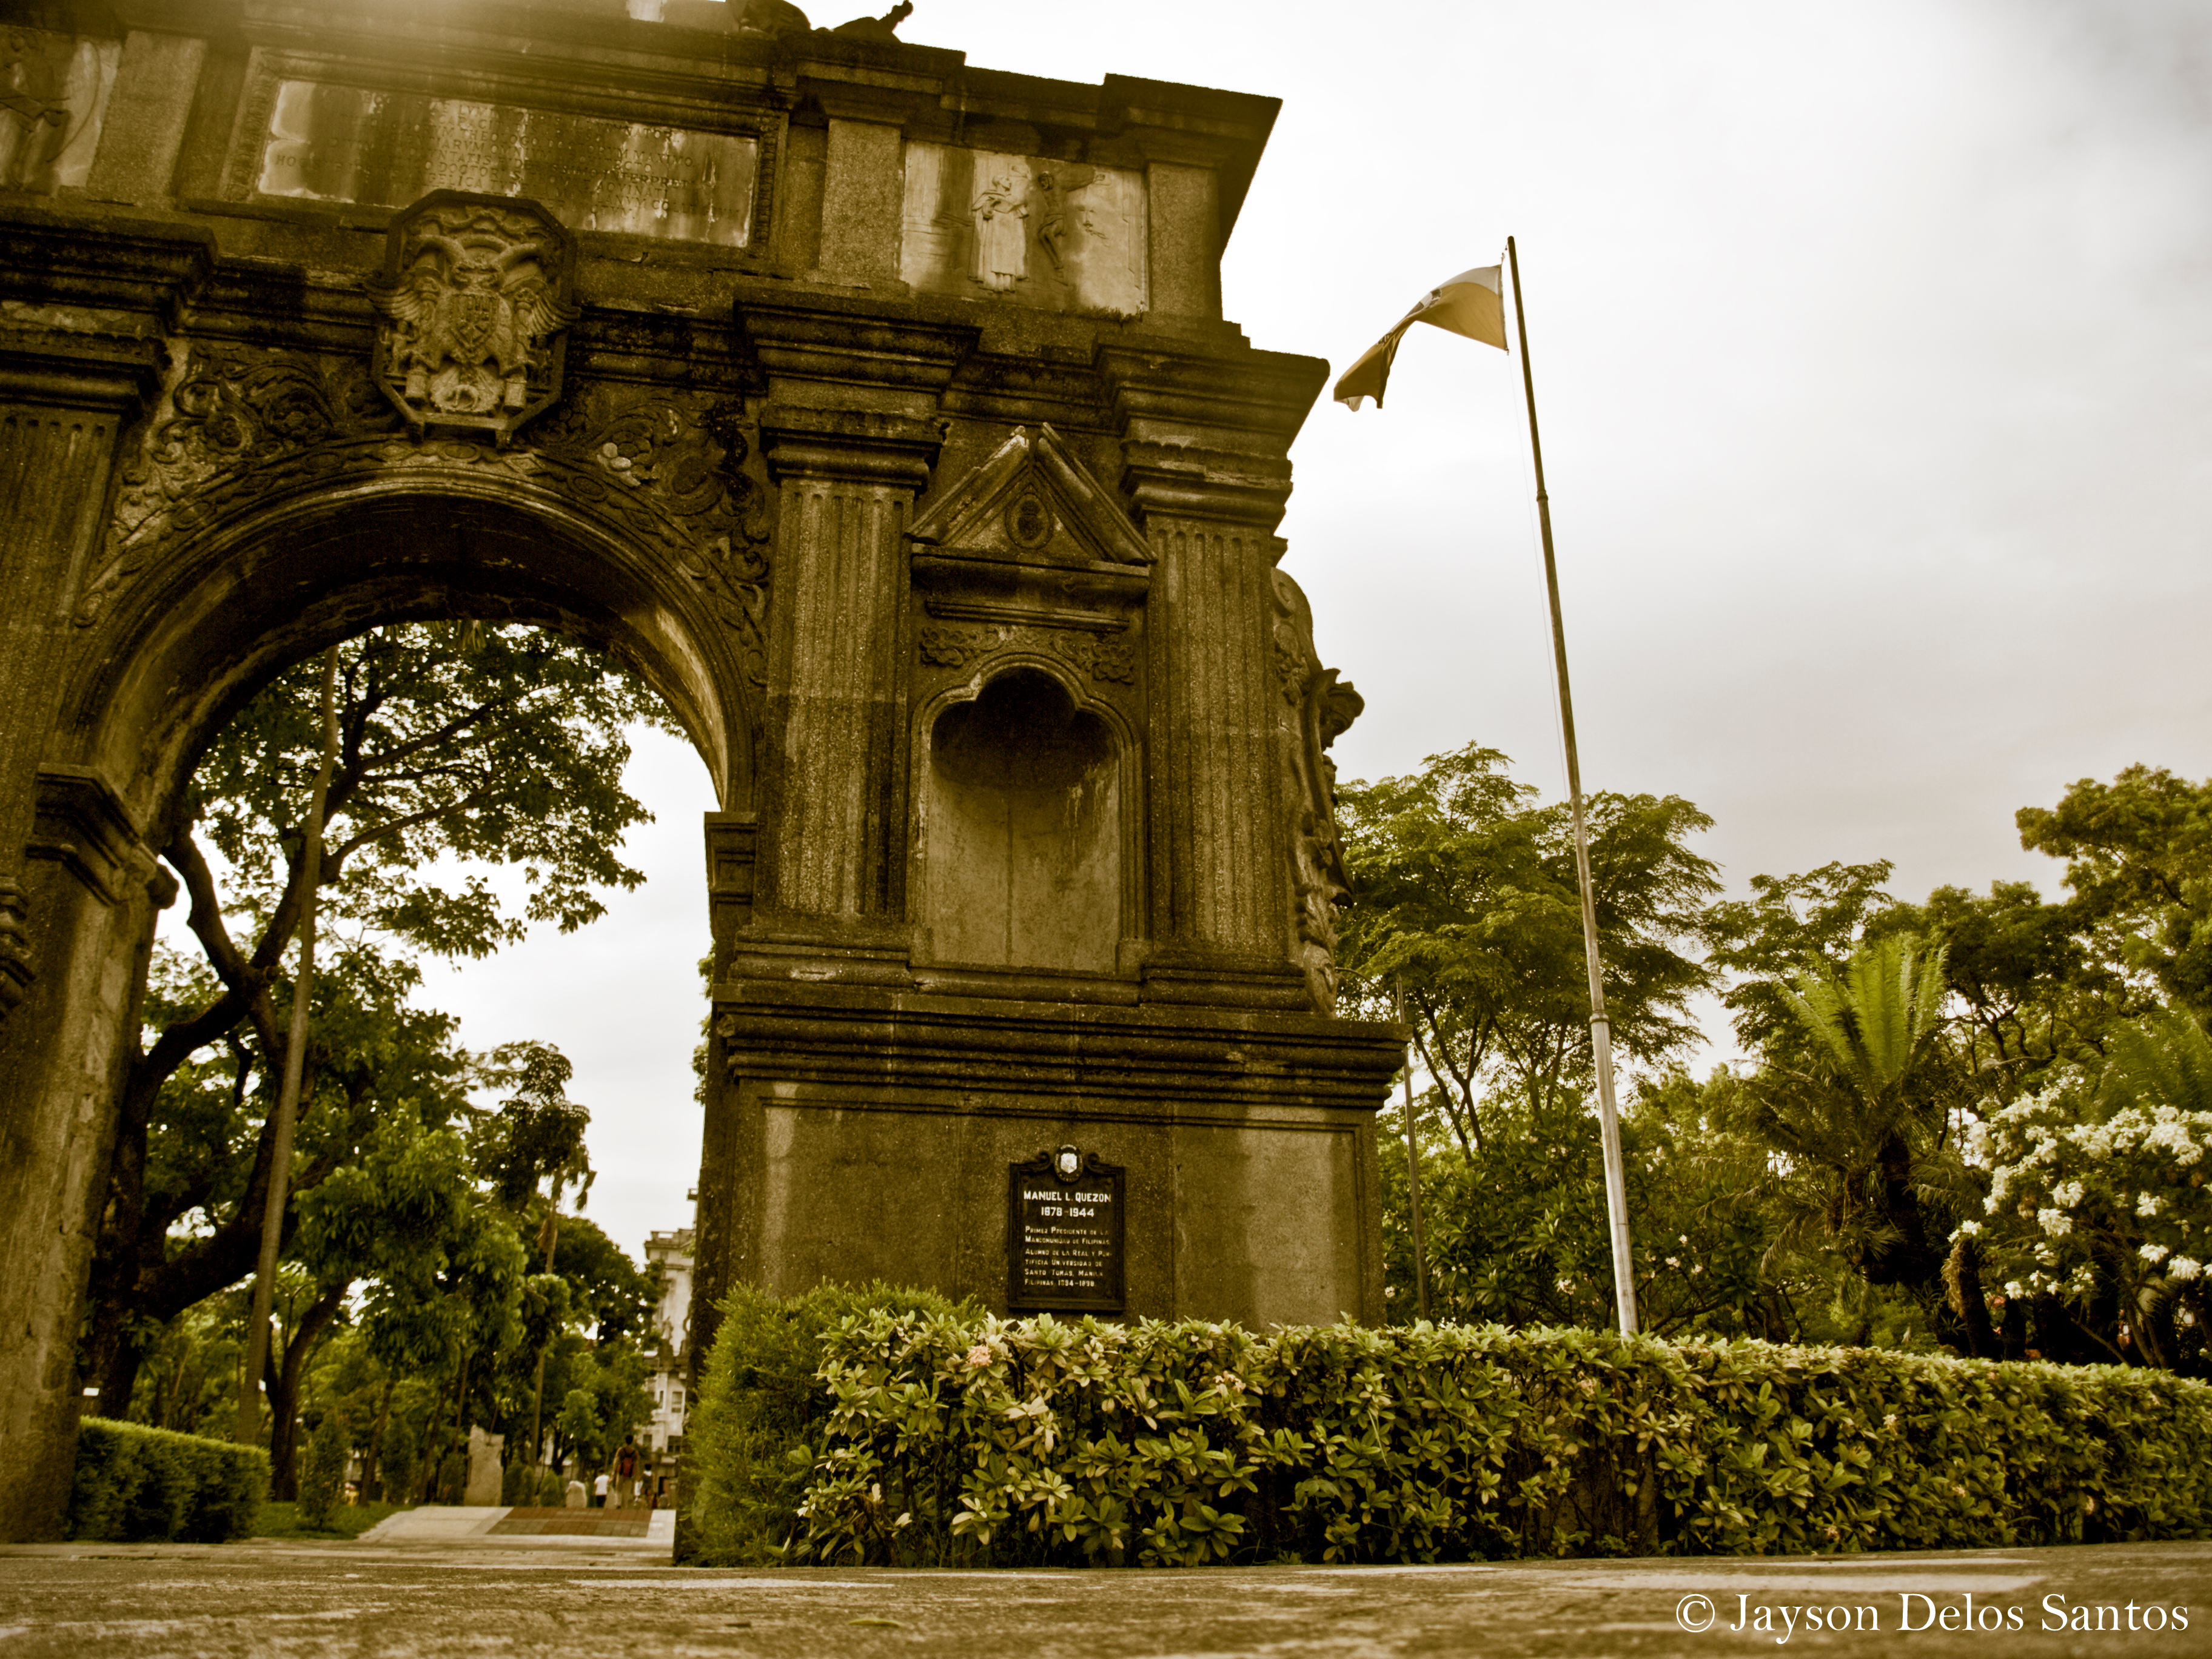 The Arch of the Centuries was originally erected in 1611 at Intramuros, where University of Santo Tomas (UST) was originally found.